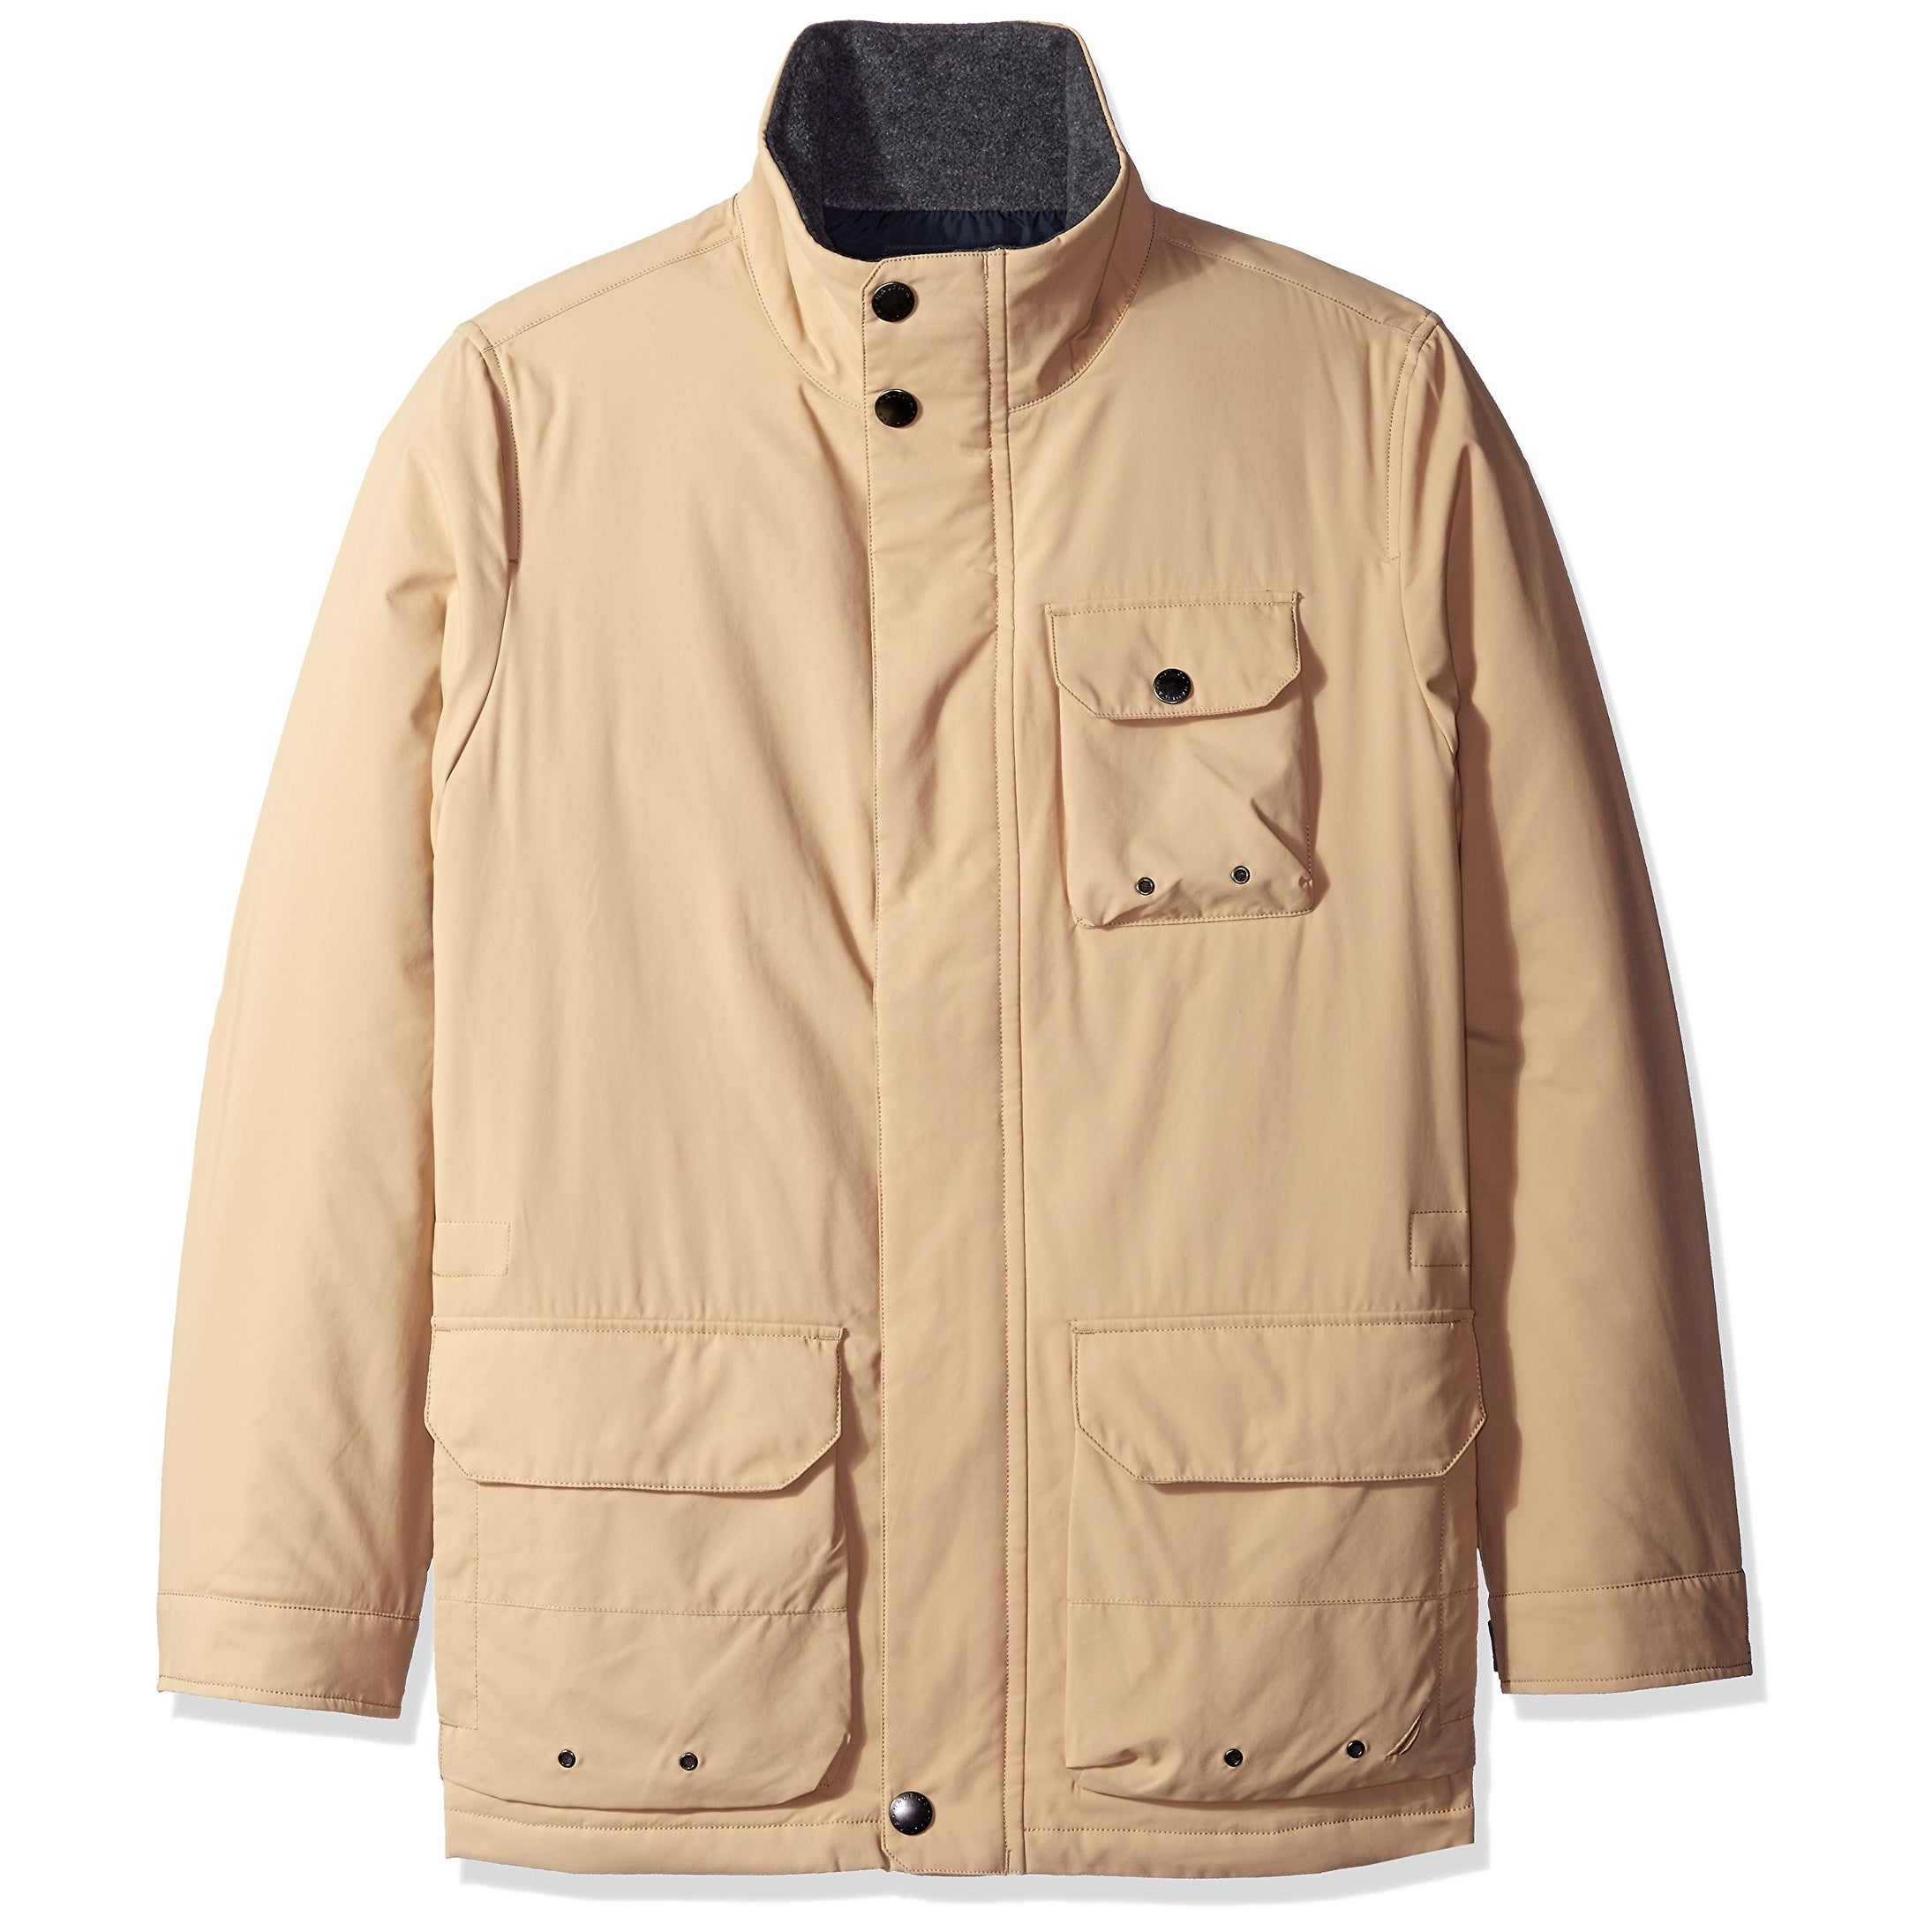 27a33d3b9 Men's Nautica Outerwear | Find Great Men's Clothing Deals Shopping at  Overstock